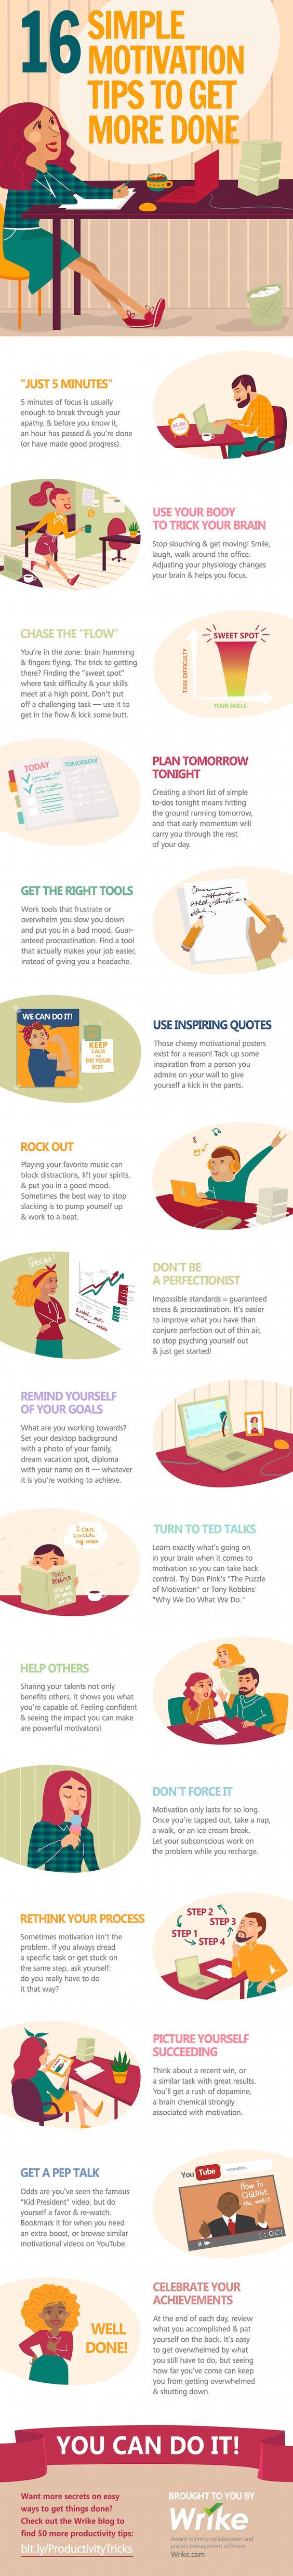 16 Quick And Easy Motivational Tips To Get More Done In Your Day